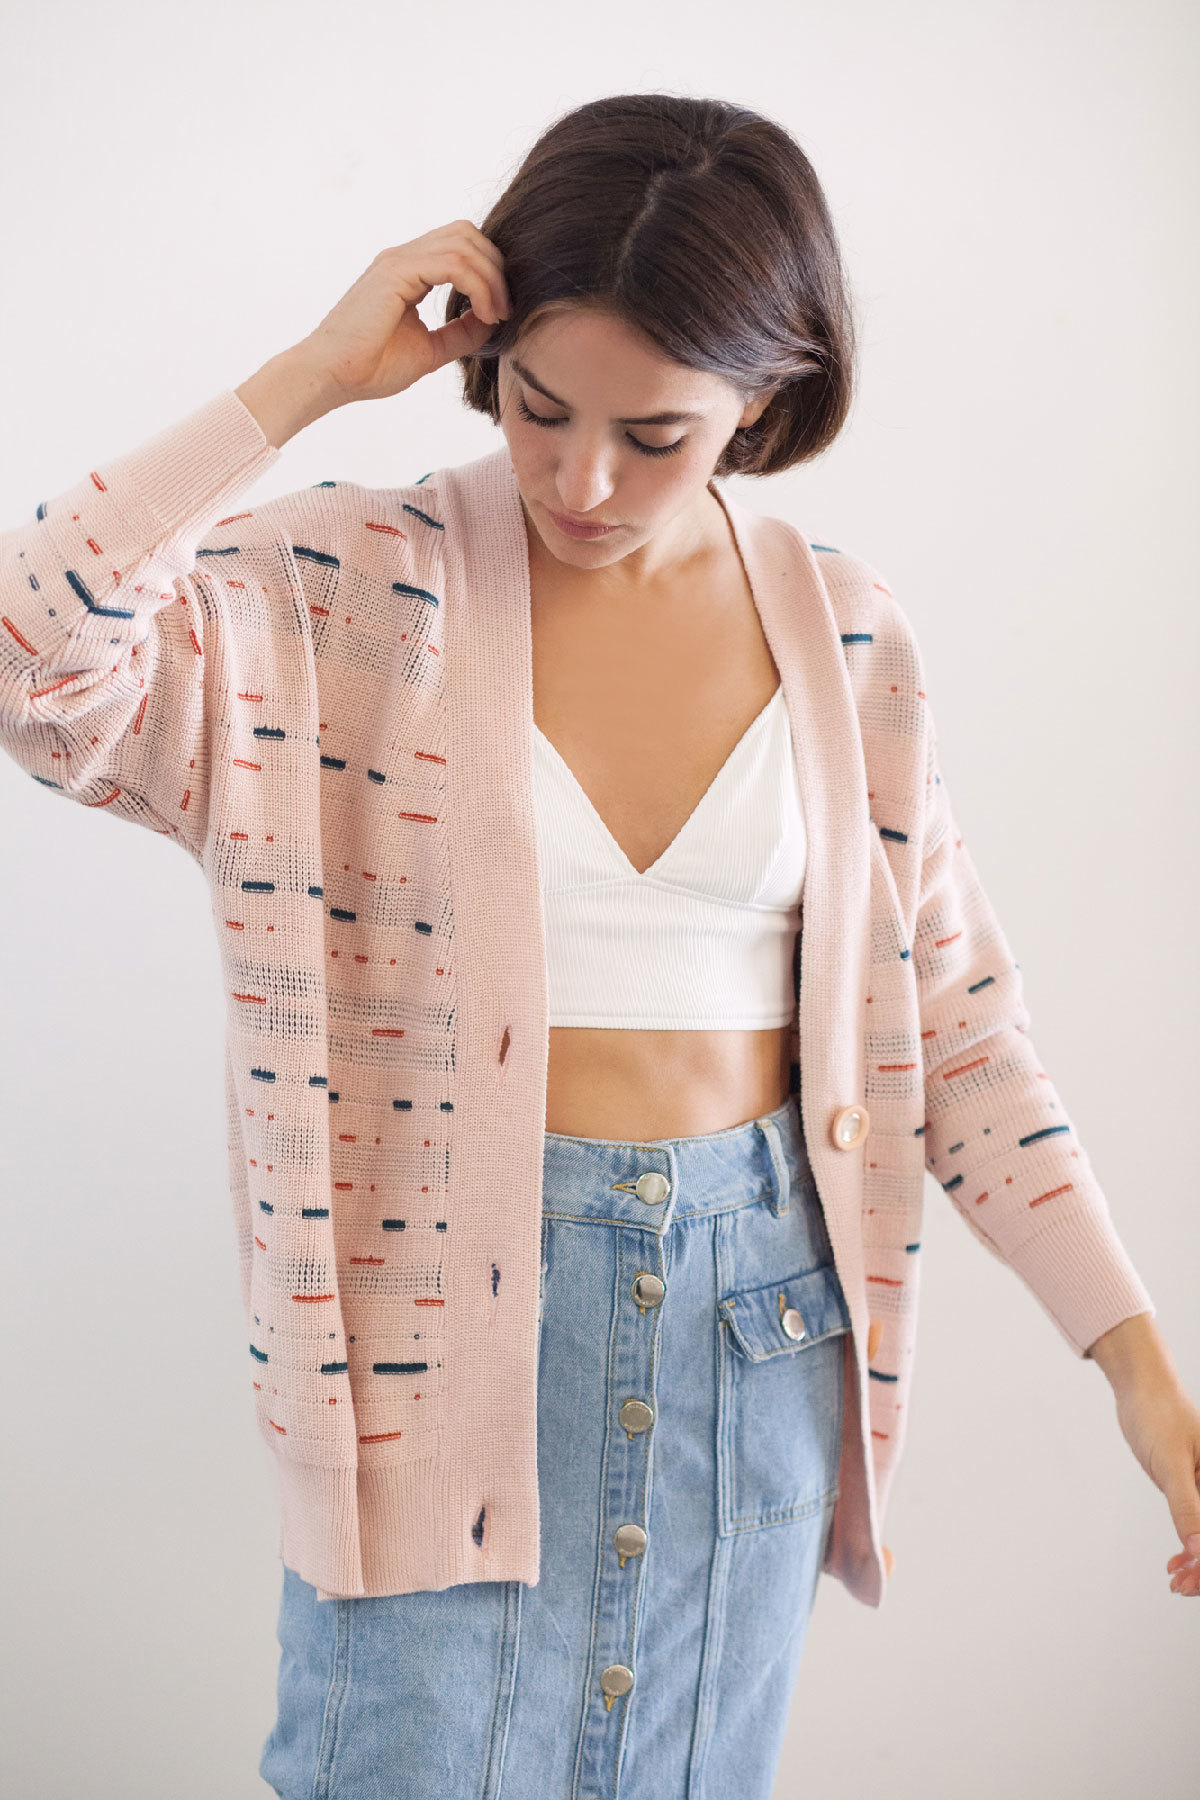 Chaqueta cardigan de Emes slow fashion